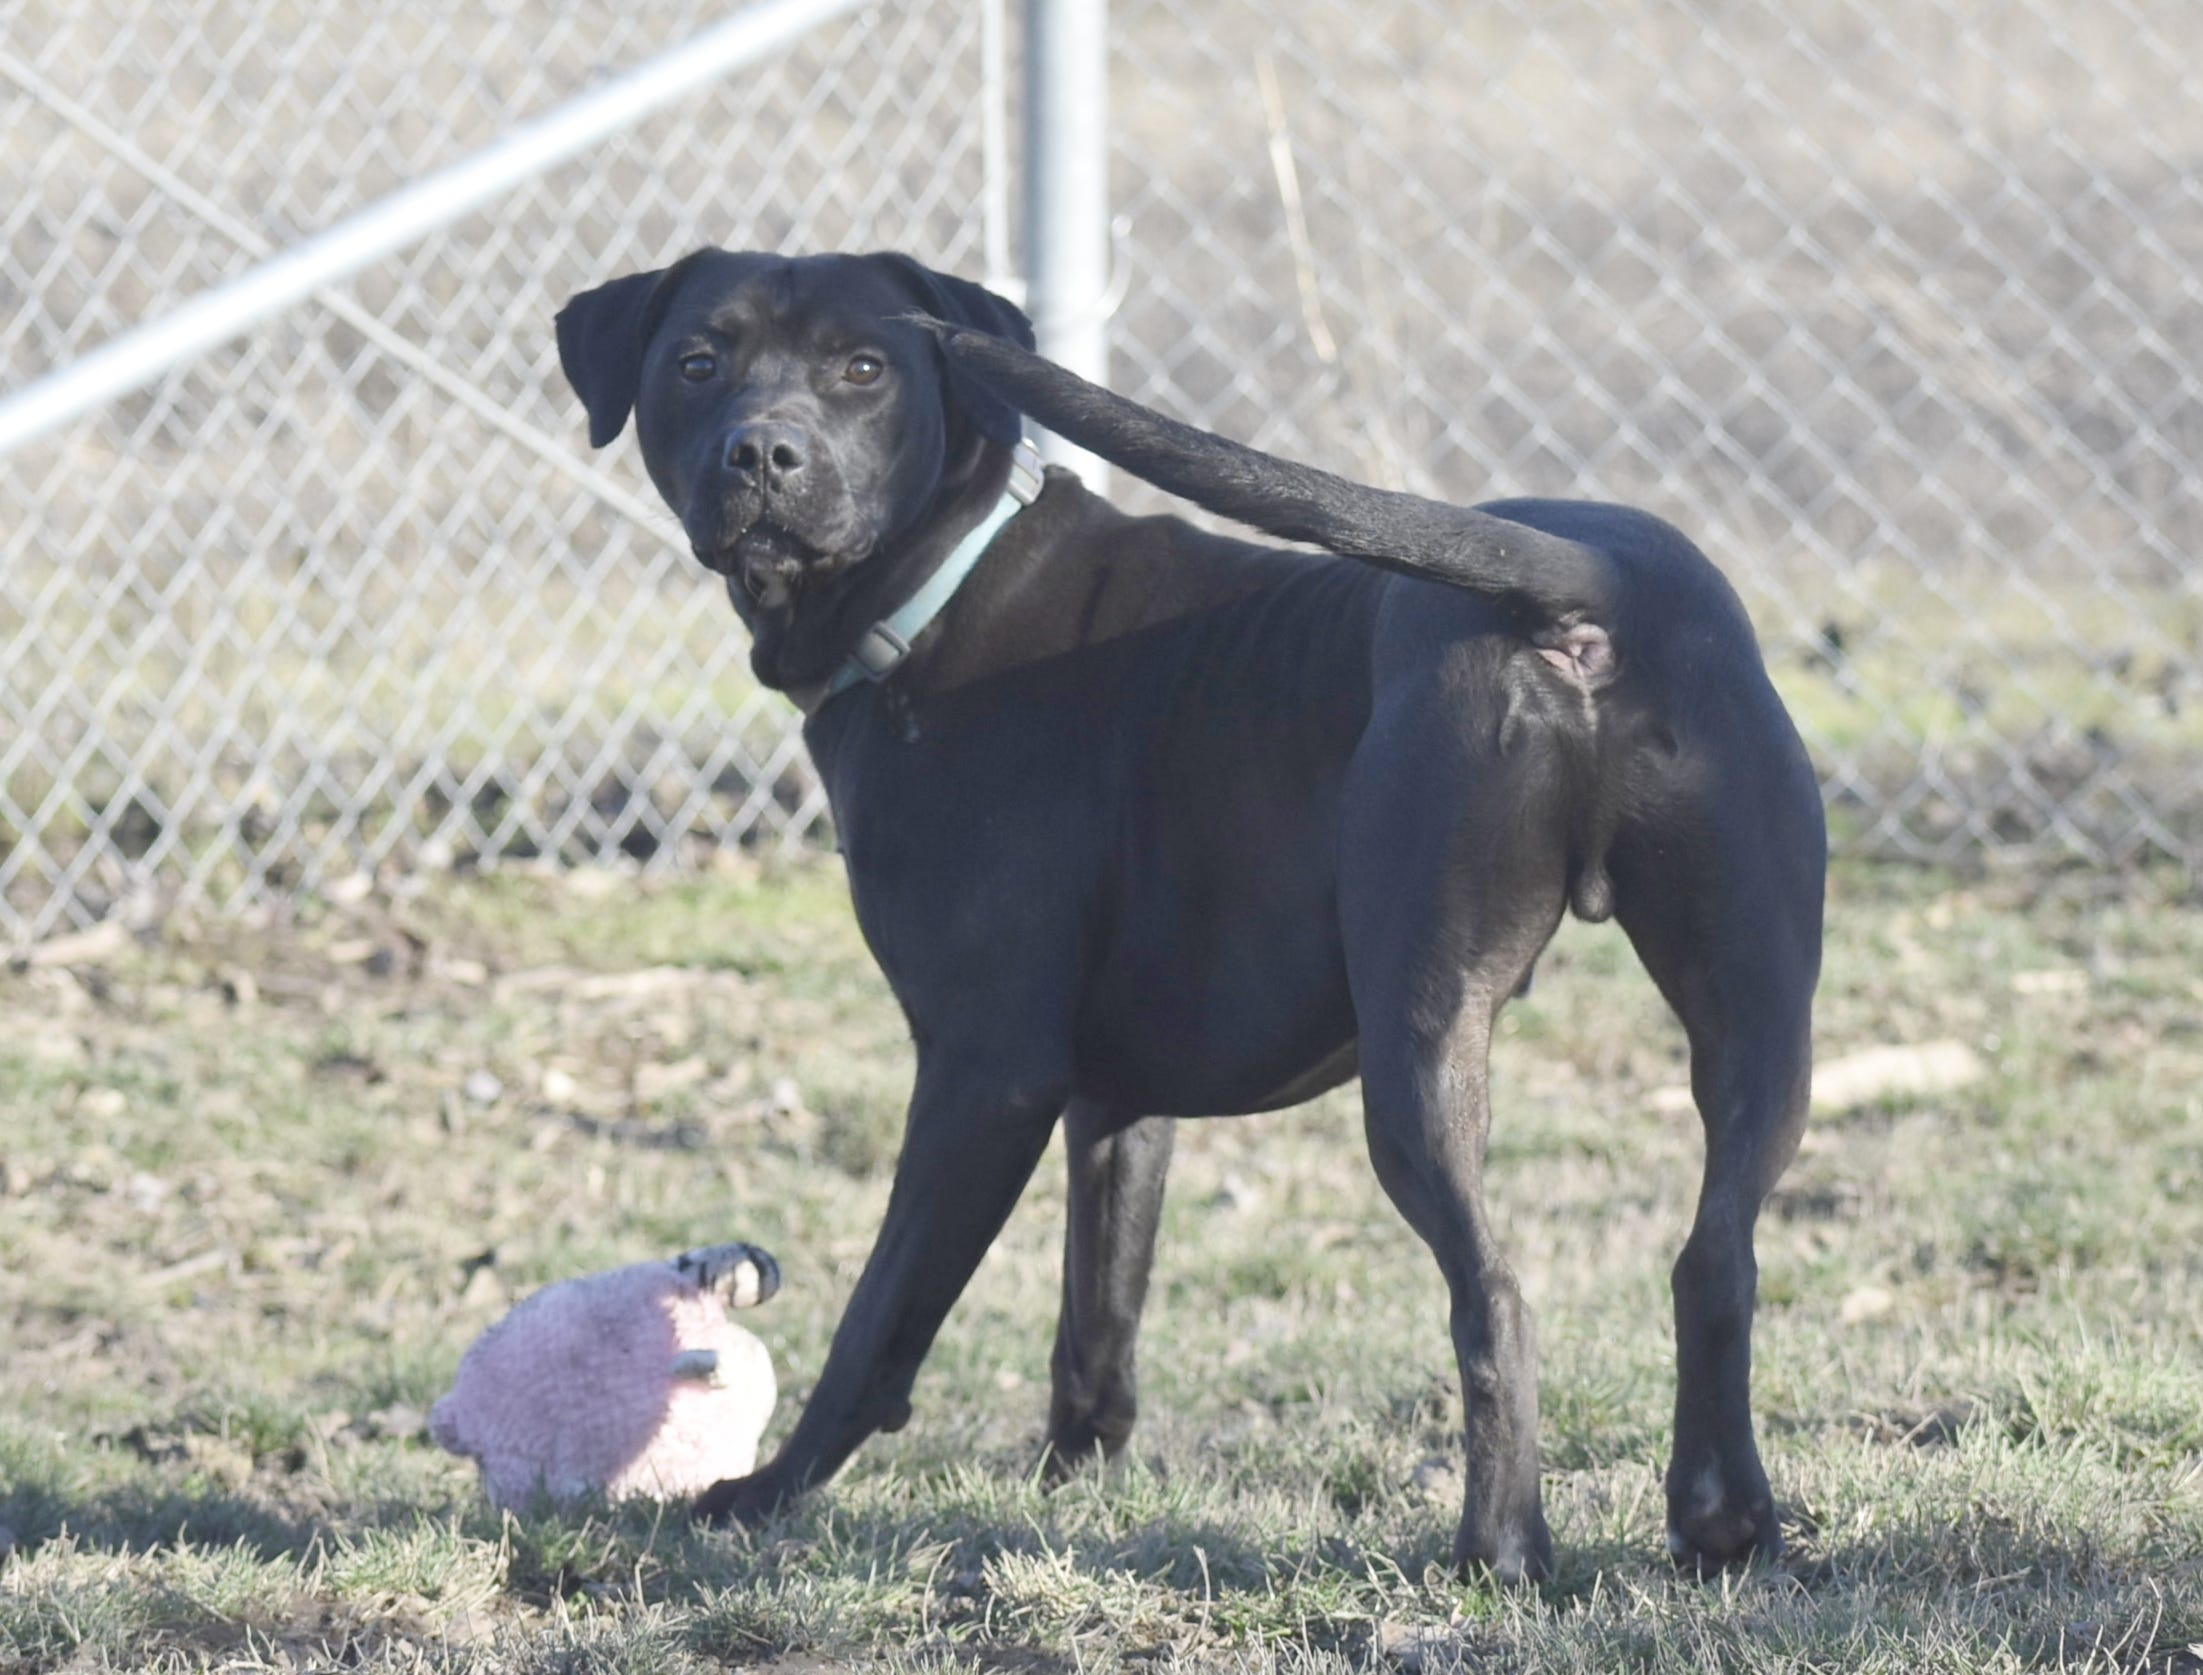 Ernie is a 2-year-old male black and white Labrador retriever mix. He is an enthusiastic, playful and fun lab mix who is in need of some training. Ernie loves toys, soccer balls and most other dogs. Contact Marion County Dog Services at 503-588-5366 or go to www.MCDogs.net.